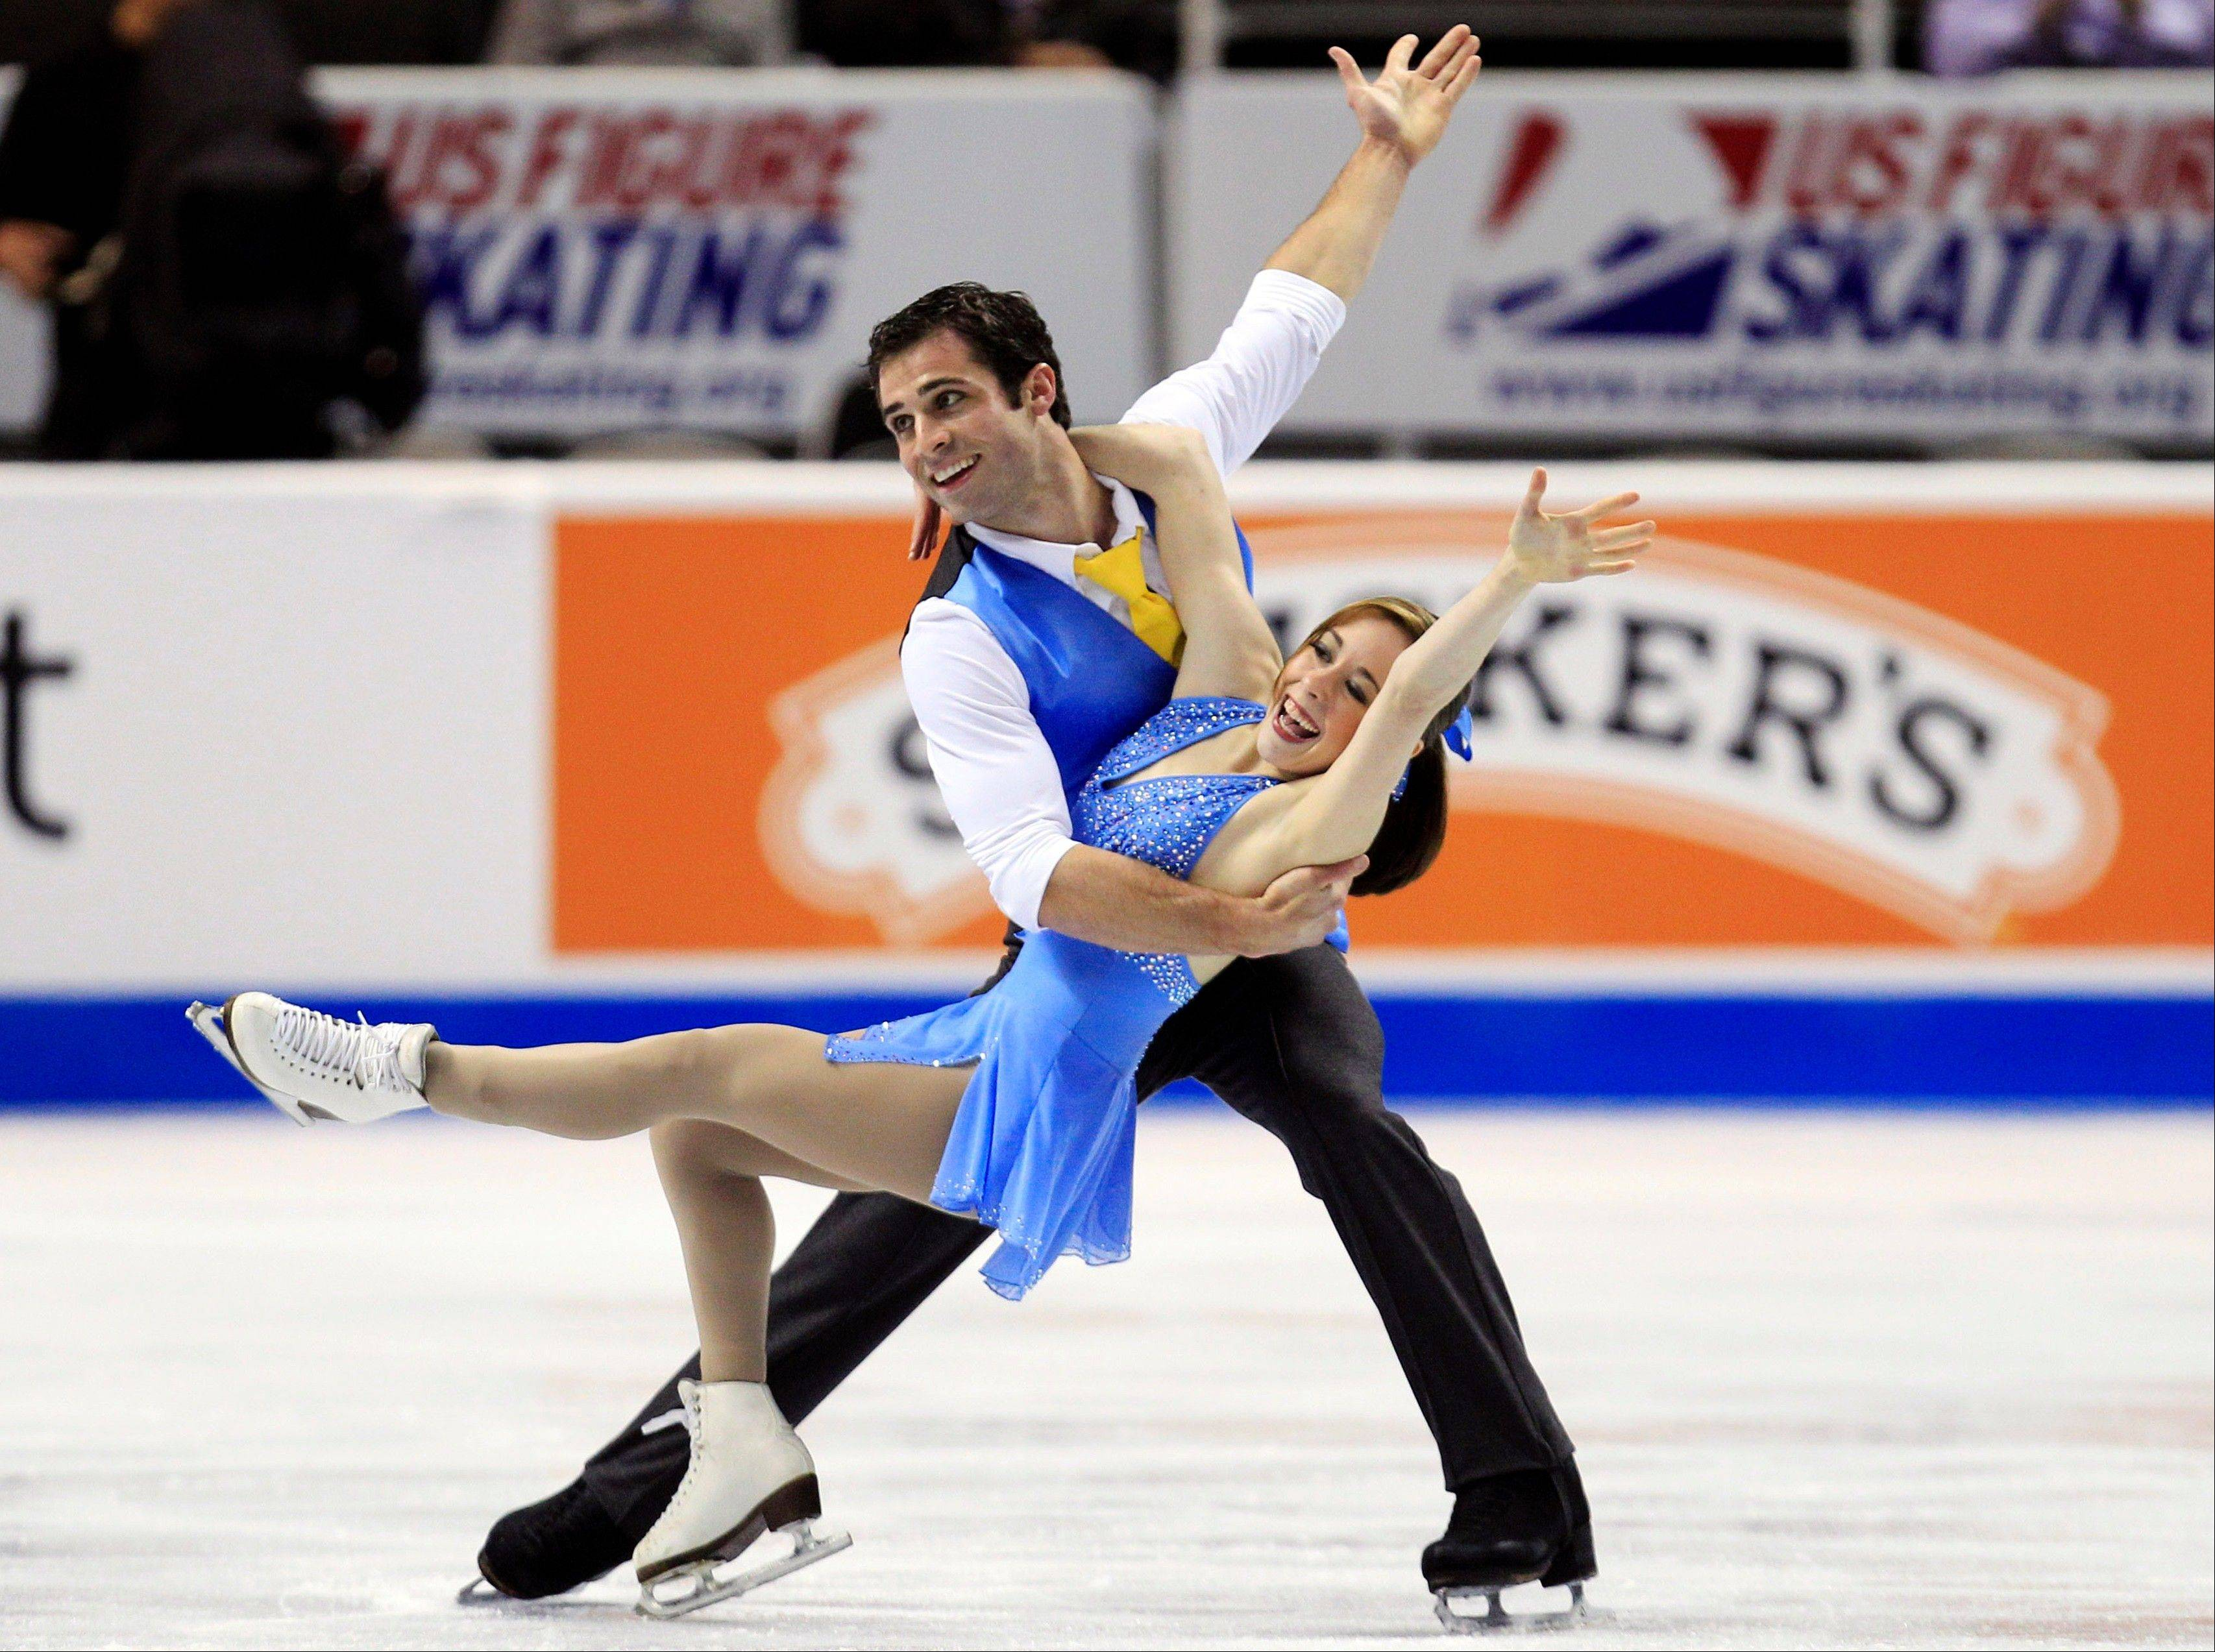 After winning two pairs titles with other partners, Algonquin's Rockne Brubaker has a shot at another with Mary Beth Marley. They took the lead in the pairs short program Thursday at the U.S. Figure Skating Championships.